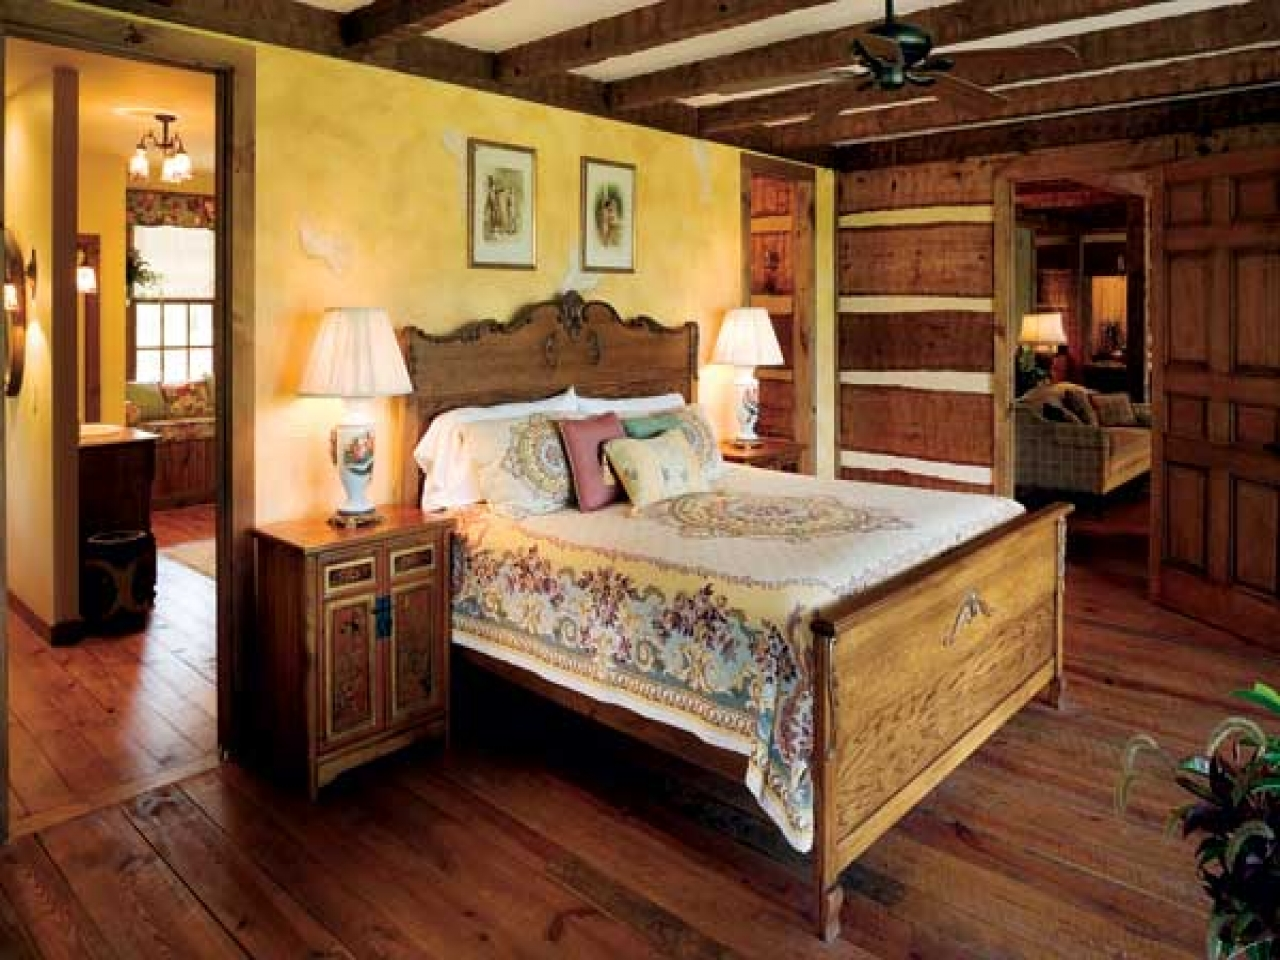 luxury master bedroom log cabin home log bedroom furniture 15947 | luxury master bedroom log cabin home log bedroom furniture lrg f96b17915afbfde7